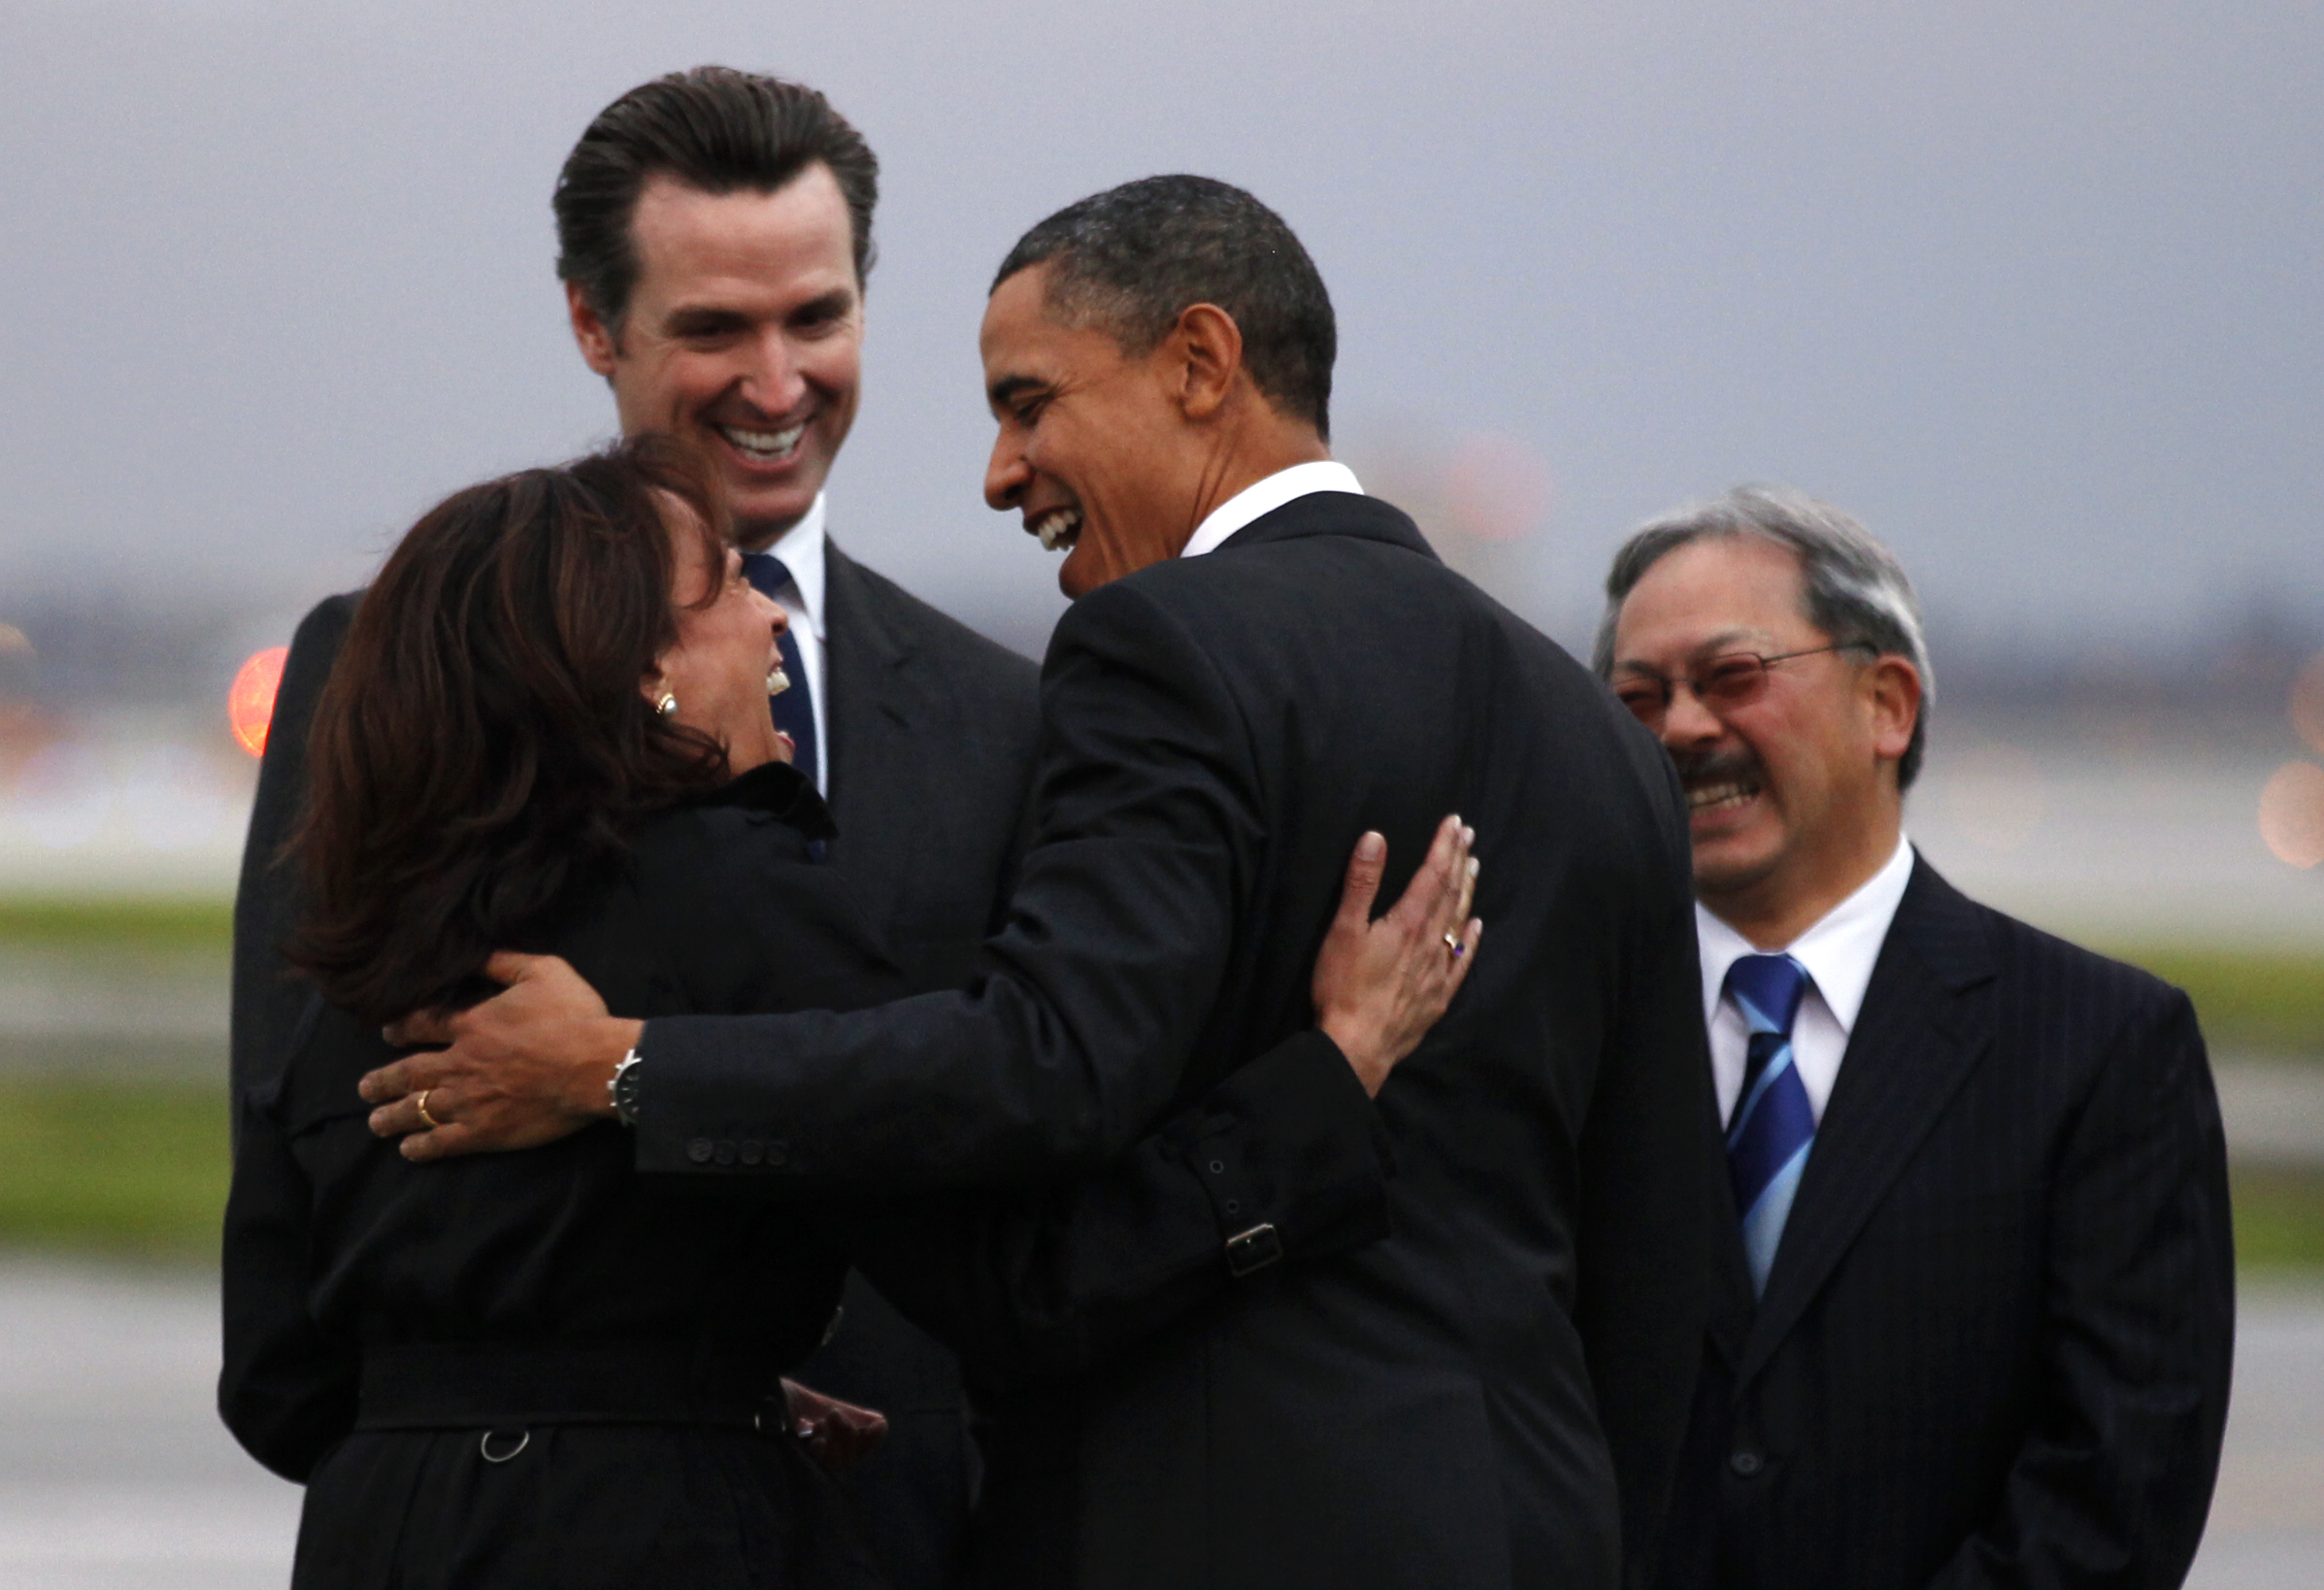 U.S. President Barack Obama is greeted by California Attorney General Kamala Harris (L), California Lieutenant Governor Gavin Newsom (2nd L) and San Francisco Mayor Edwin Lee (R) upon his arrival in San Francisco February 17, 2011. Kevin Lamarque/Reuters